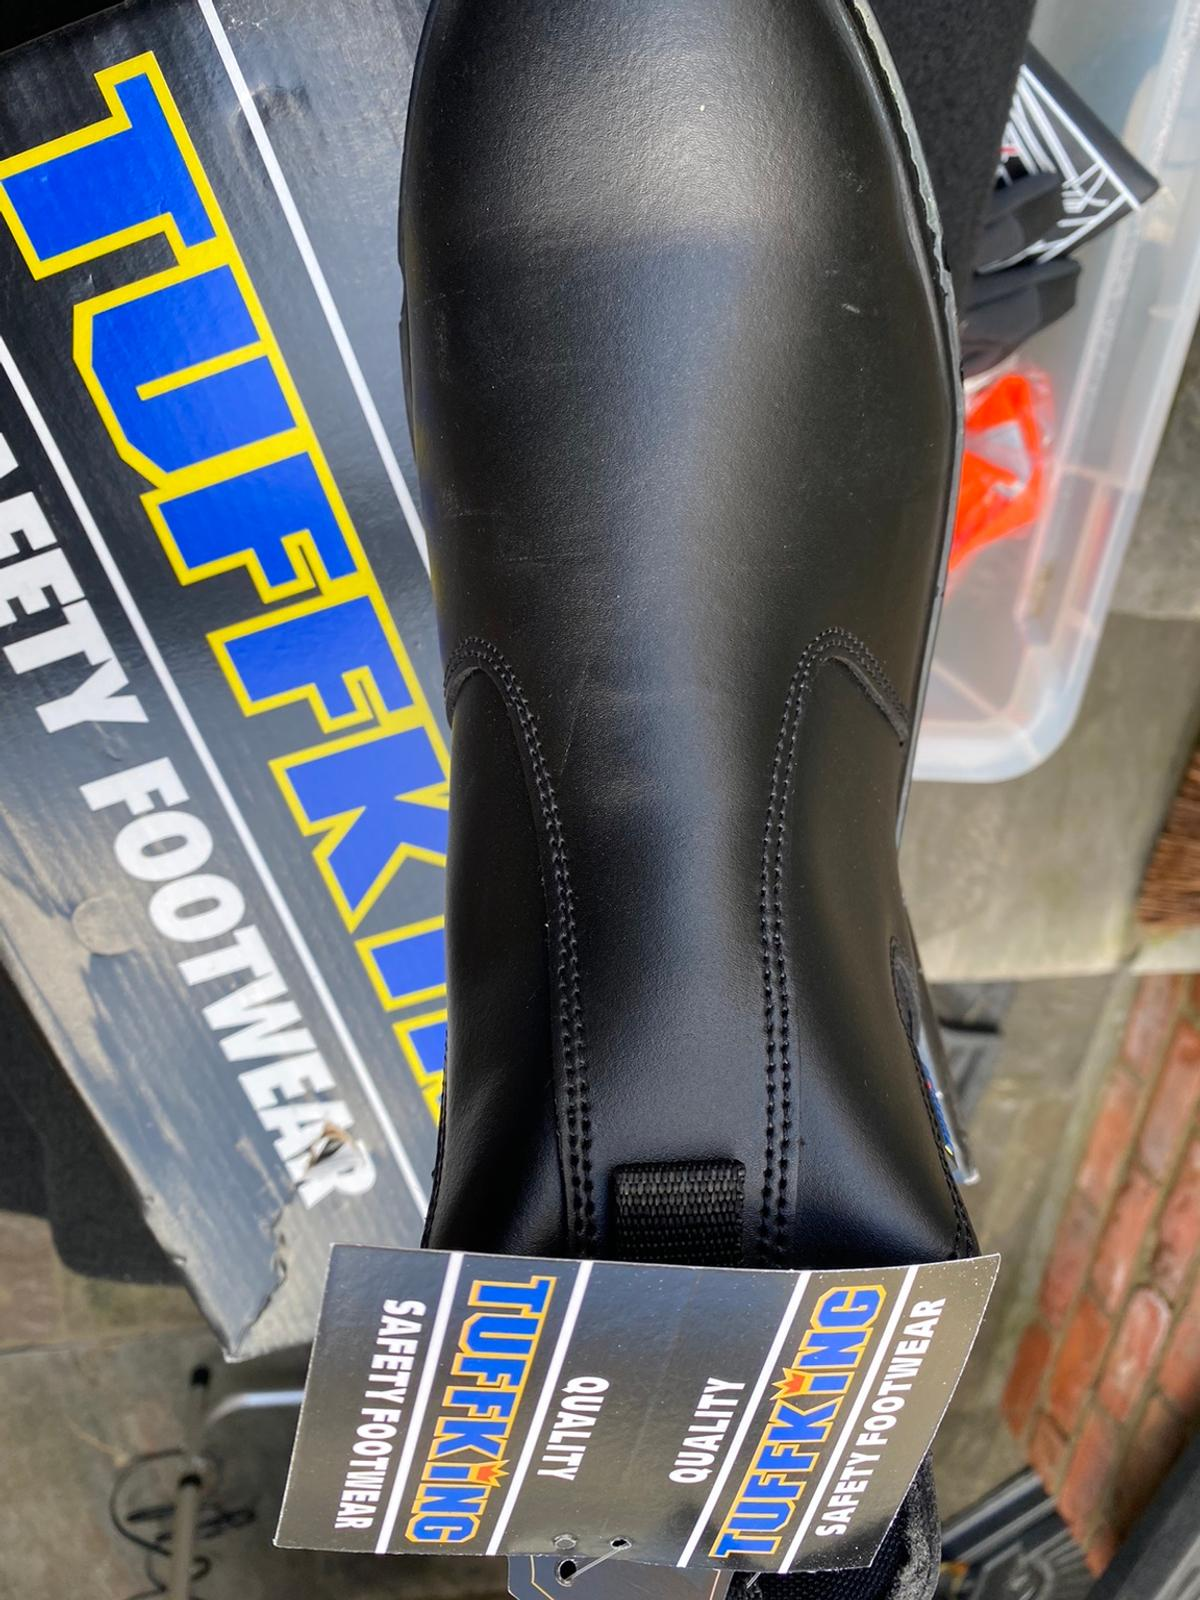 For sale pair of men's size 10 safety boots